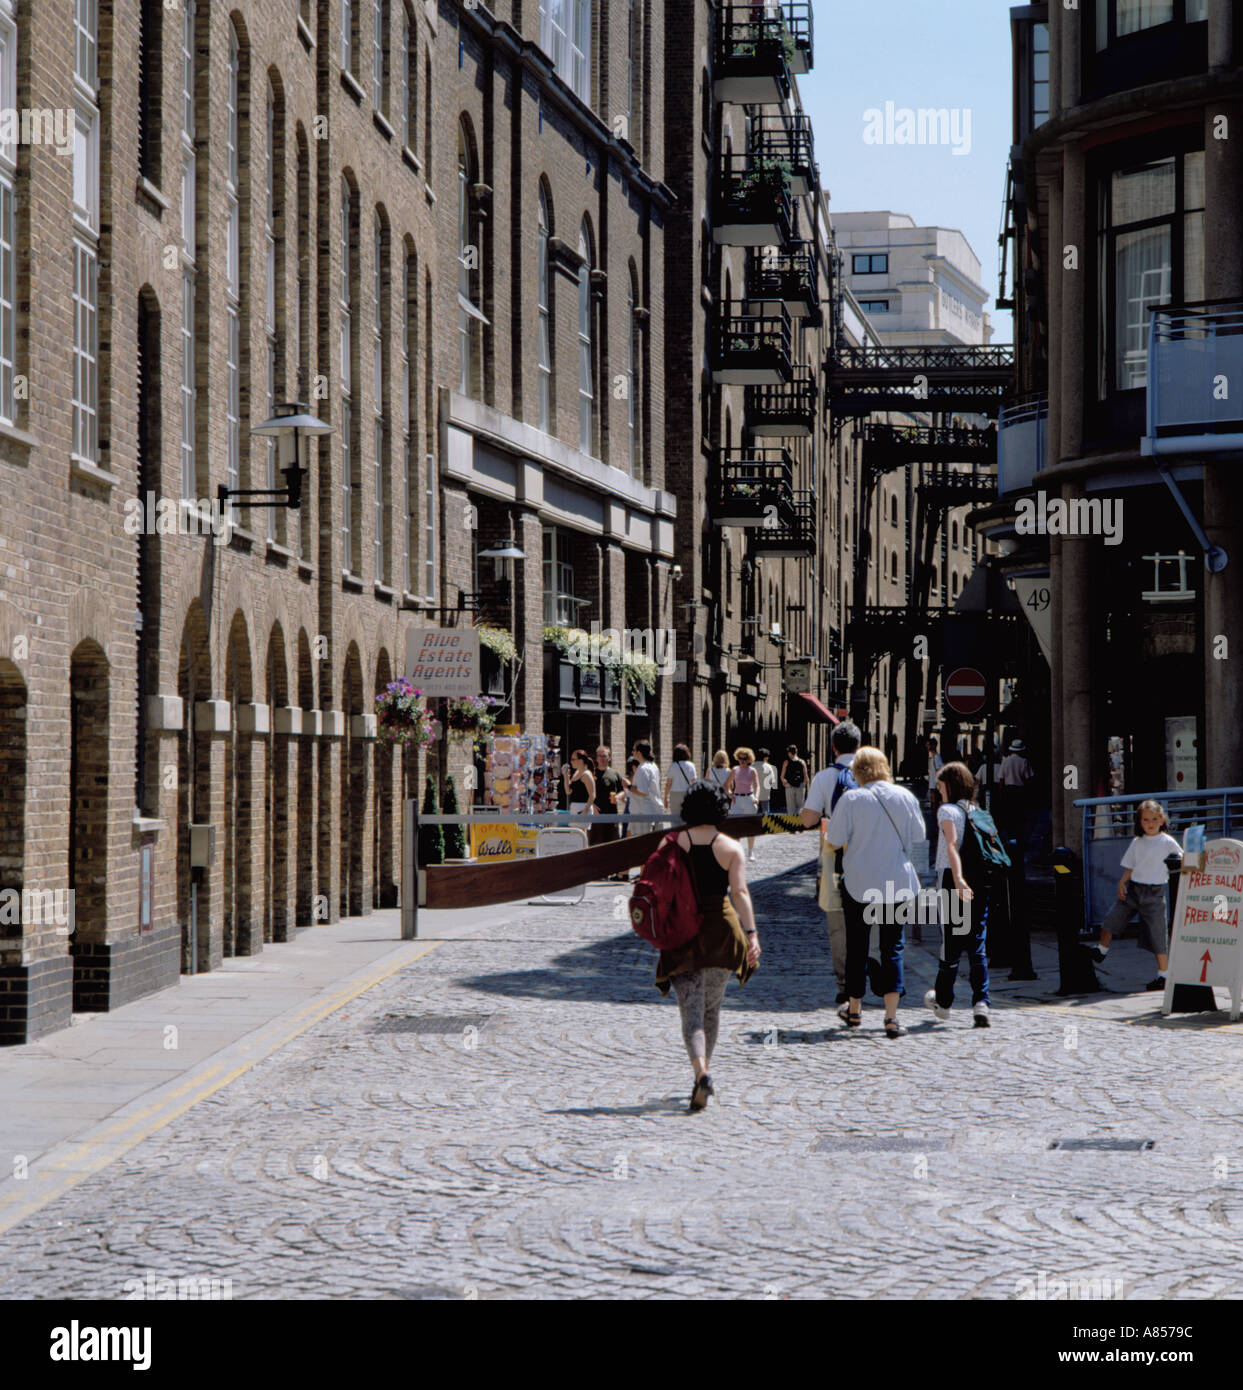 Old ware house buildings and cobbled street, Butlers Wharf, Shad Thames, near Tower Bridge, Bermondsey, London, England, UK. - Stock Image